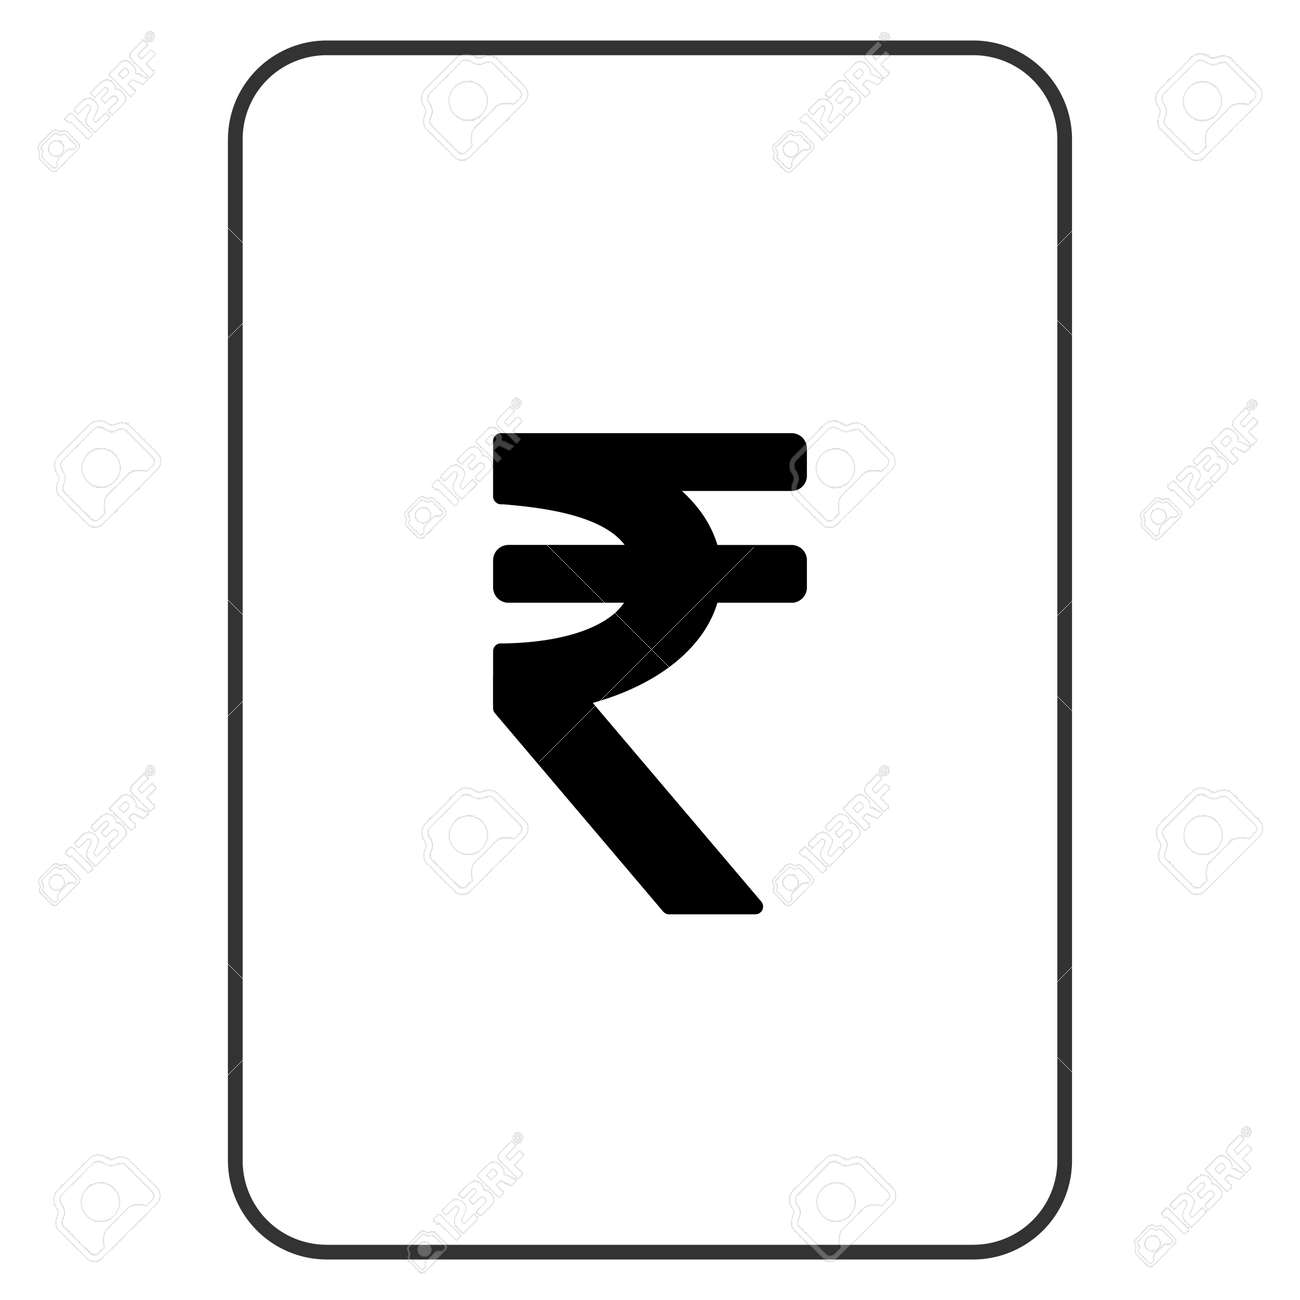 Indian Rupee Playing Card Pictogram Raster Style Is A Flat Symbol